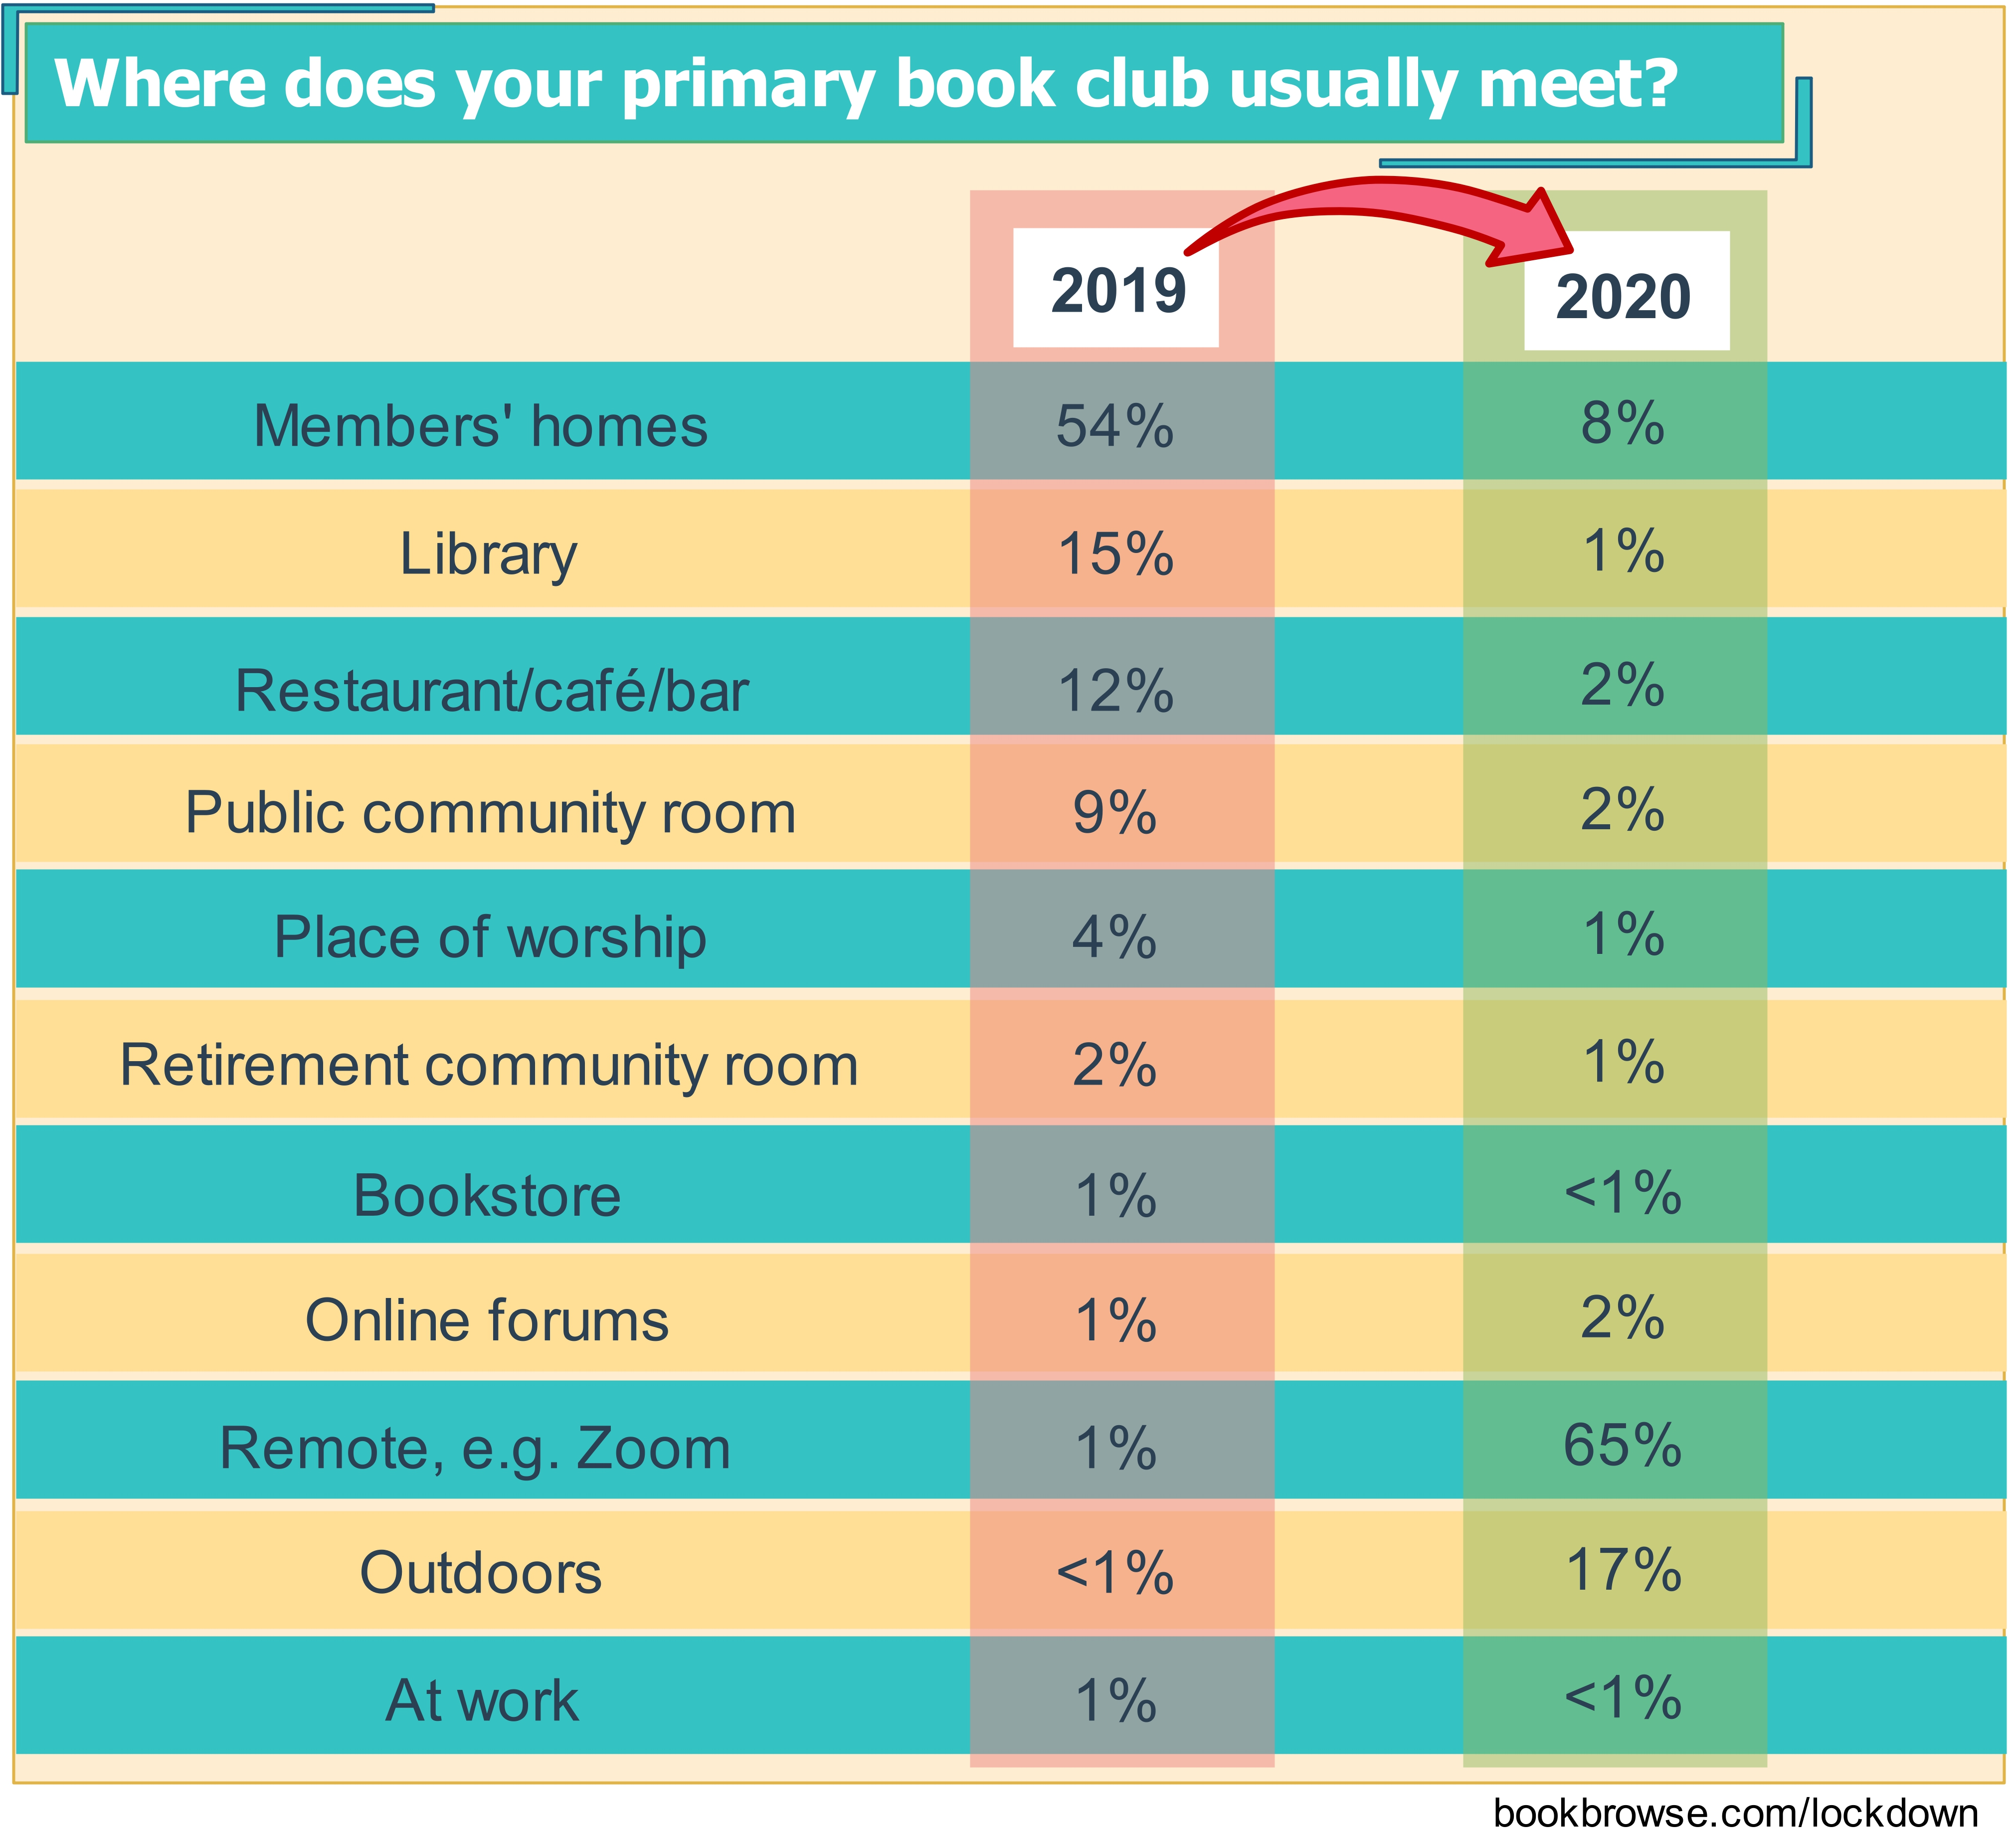 where book clubs are meeting in 2020 compared to 2019